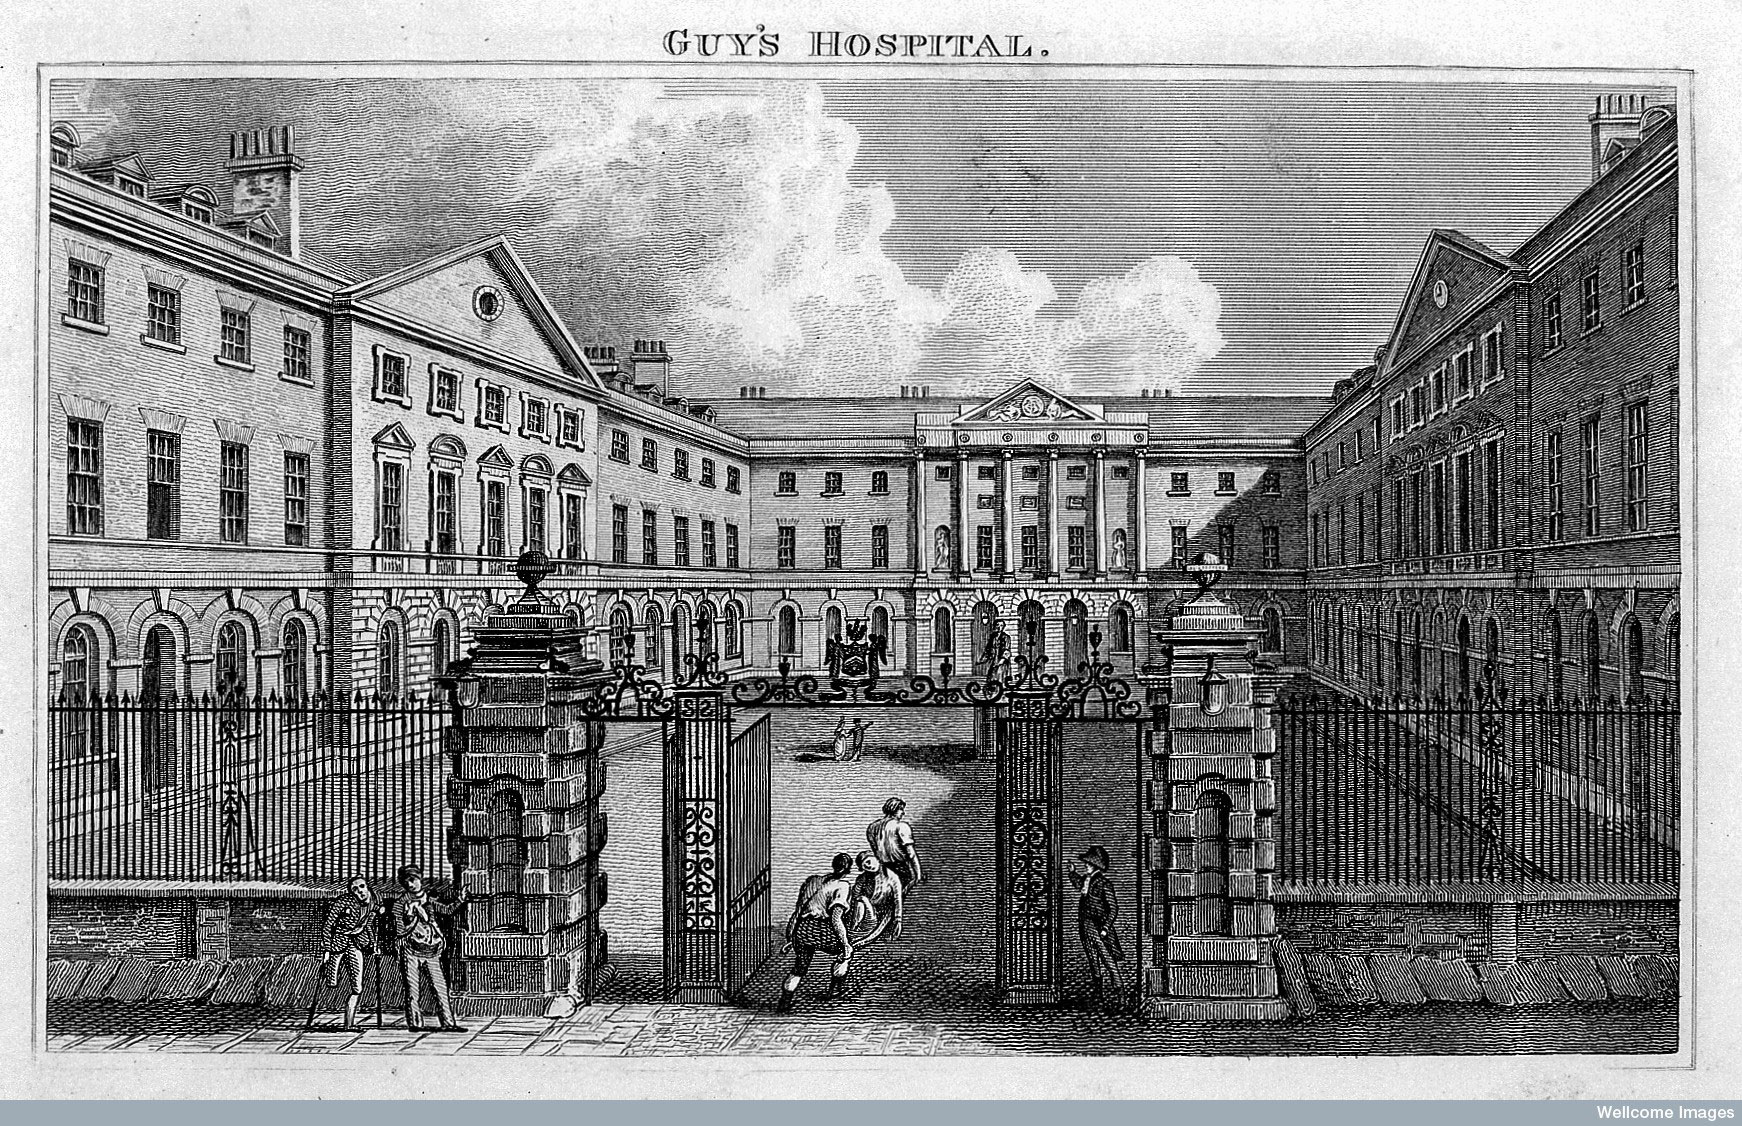 Engraving of Guy's Hospital, where John Keats trained as a doctor